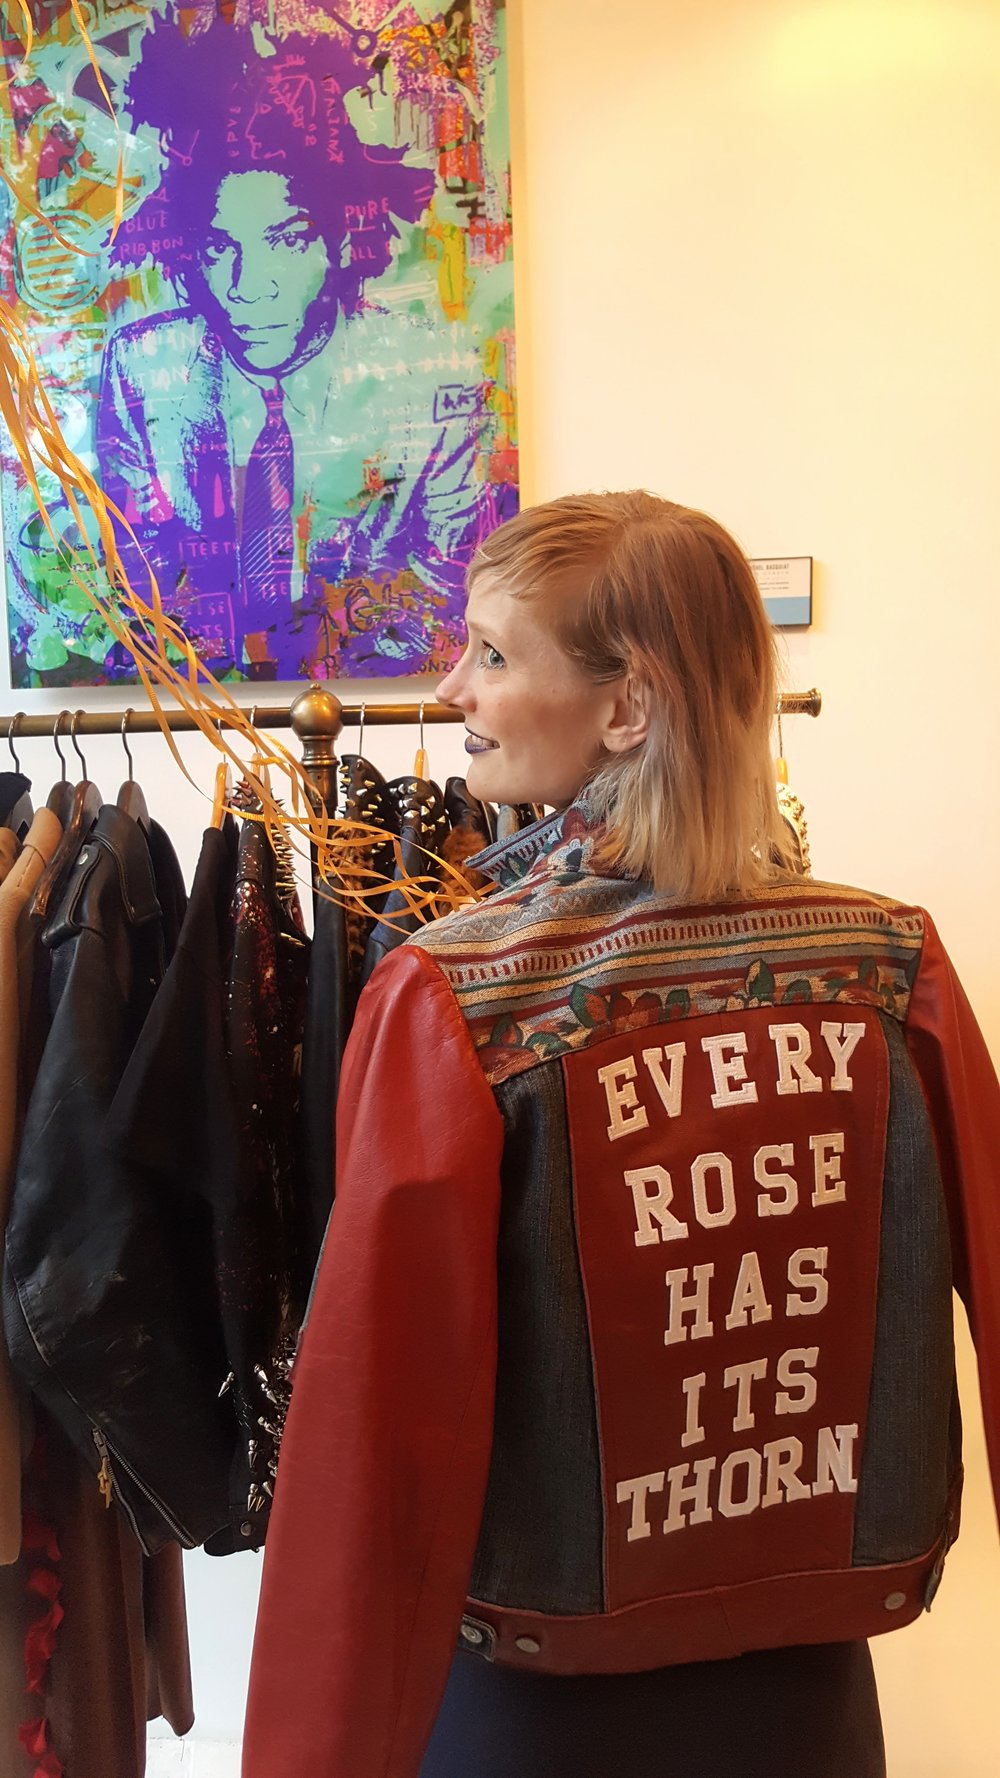 If I could take anything away from this multi-artist store, I believe it would be this rock'n'roll jacket - so rad!